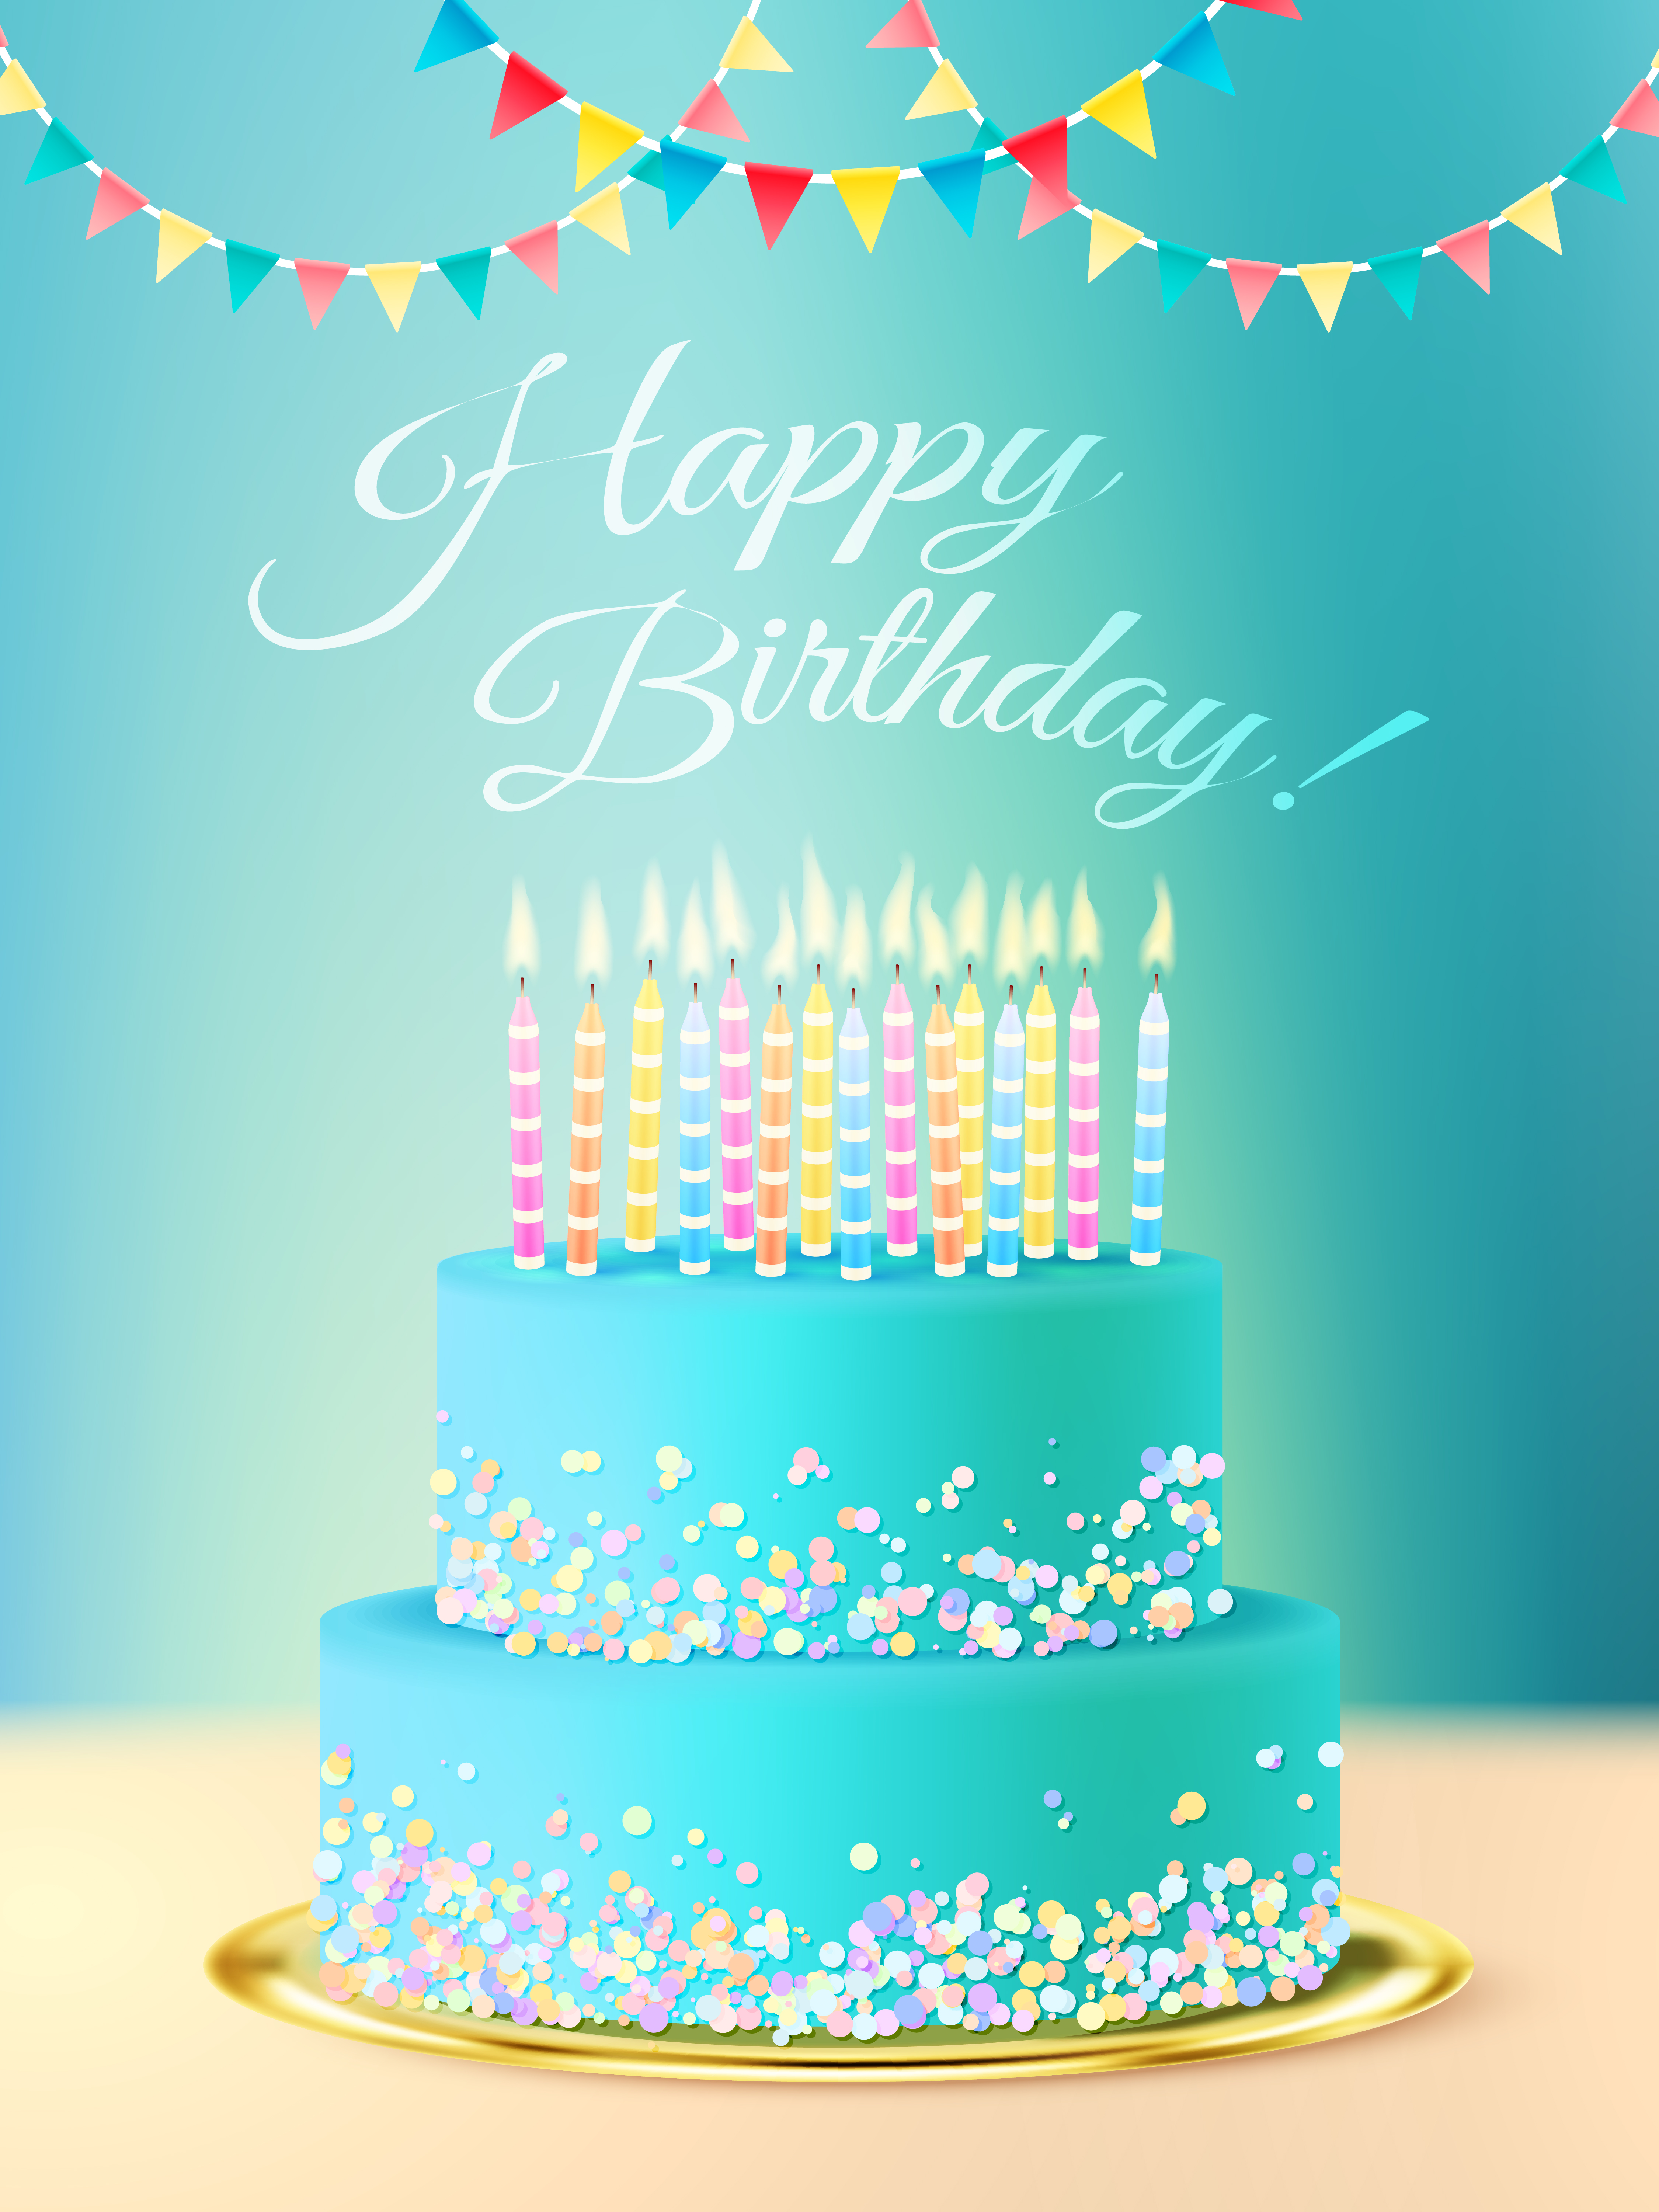 Miraculous Happy Birthday Message With Realistic Cake Download Free Vectors Funny Birthday Cards Online Chimdamsfinfo